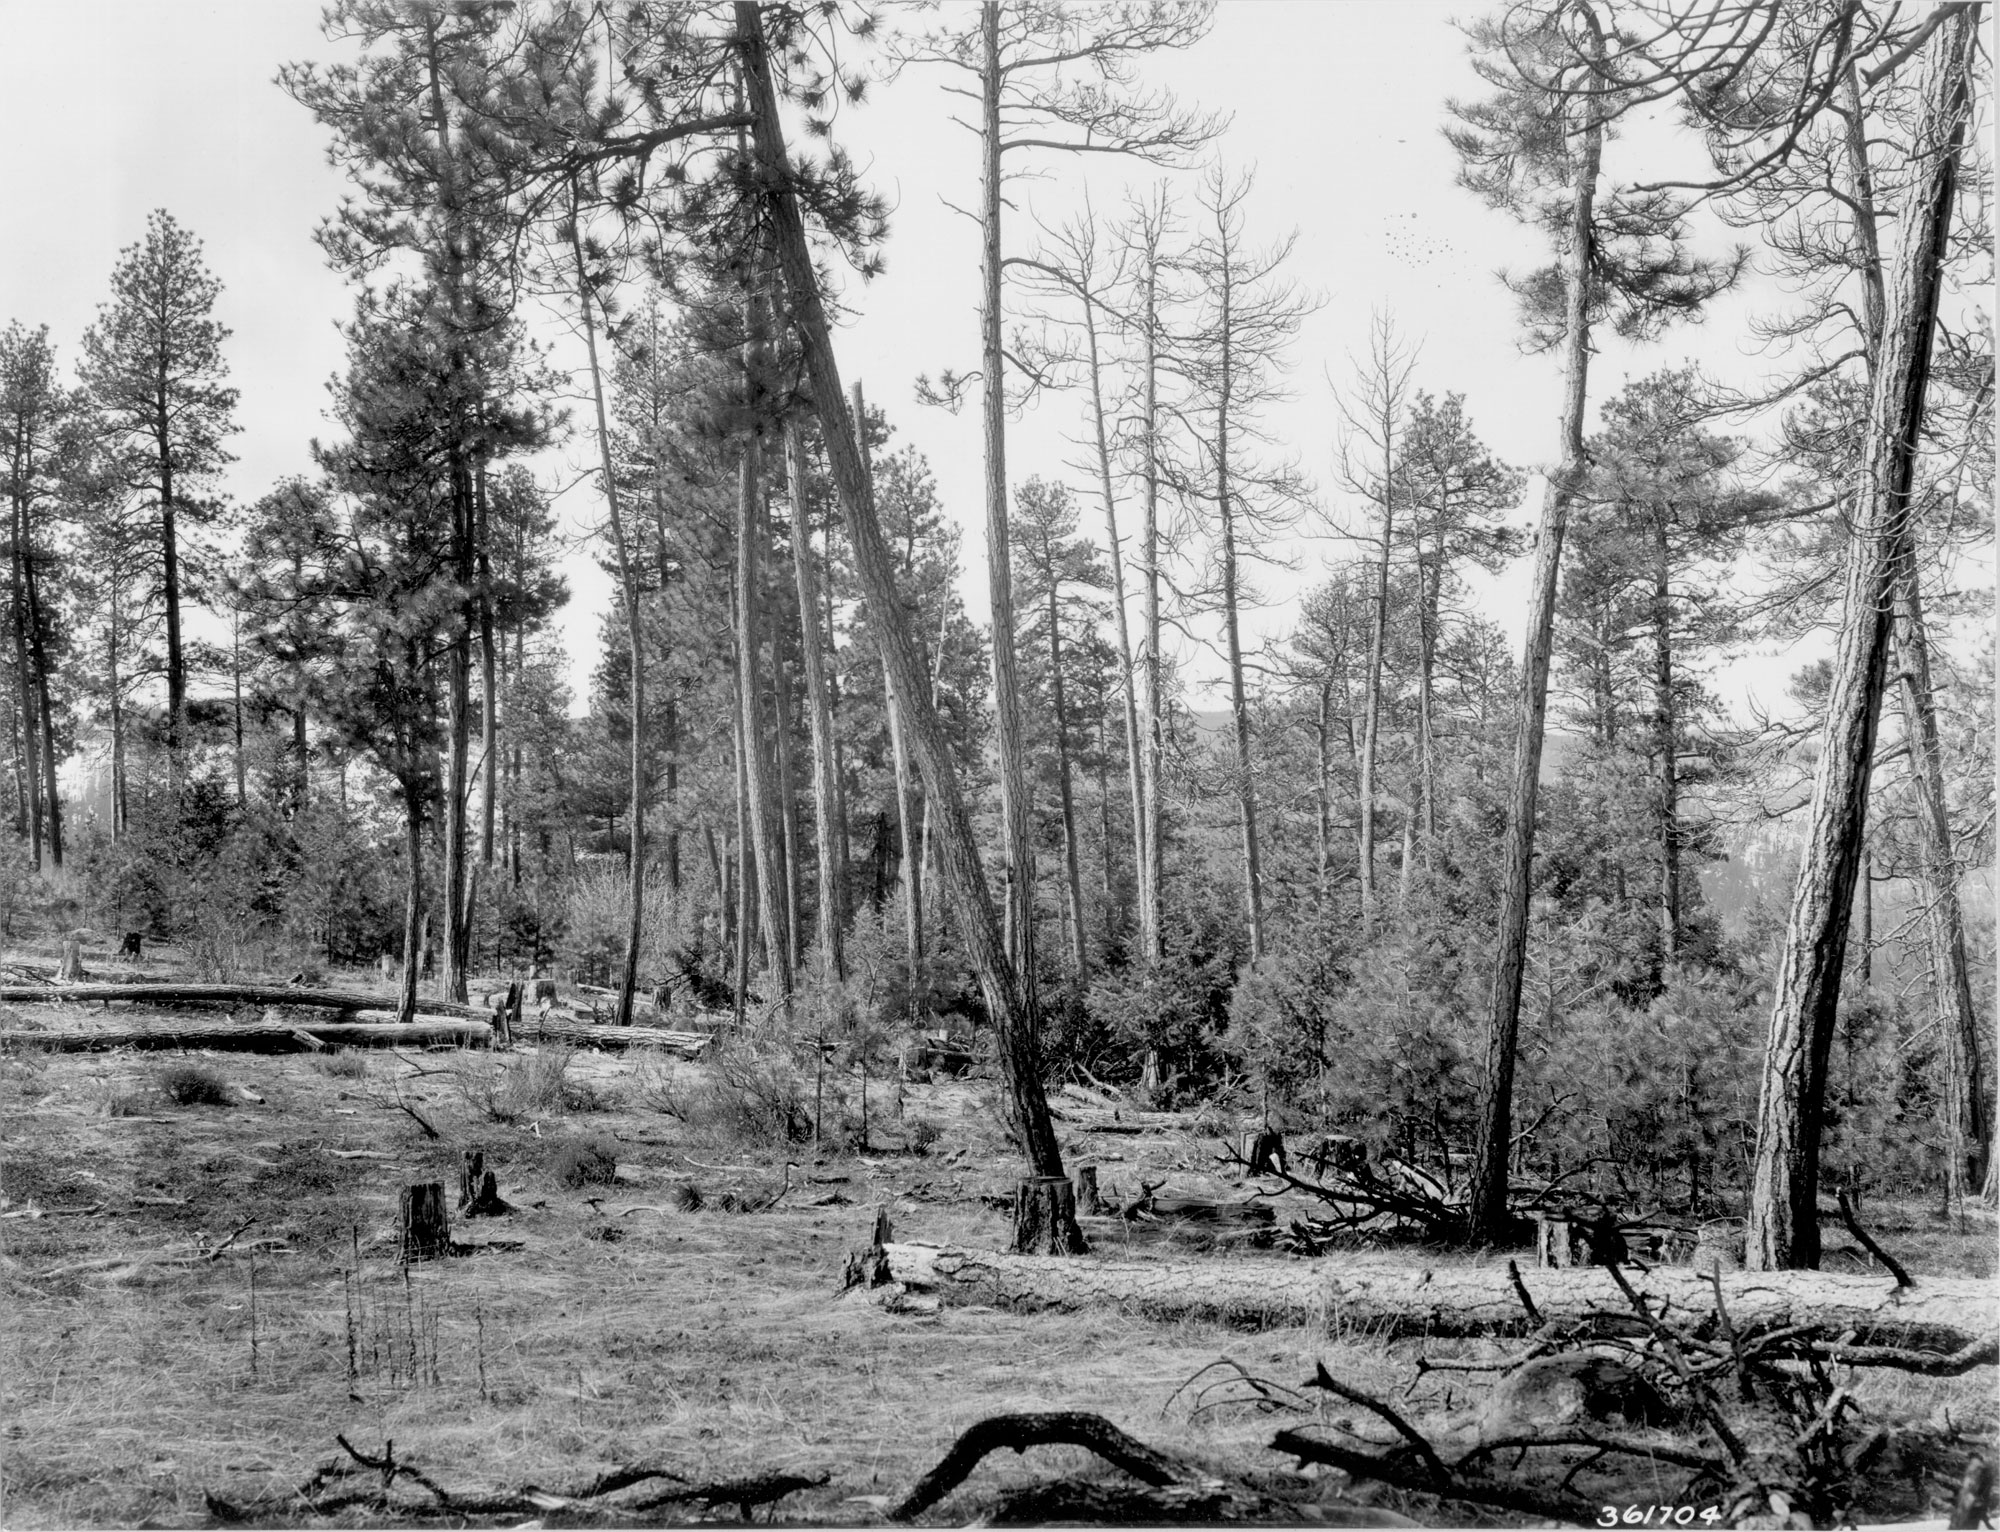 1938. 29 years later. Several pines have been cut, some have died, and others have fallen to the ground. Ponderosa pine and Douglas-fir regeneration is profuse, while the willow in the distance is larger. Bitterbrush has increased, but regeneration appears minimal. Slash and windfall have resulted in an increase in heavy fuels. Mullein can be seen foreground for the first time.